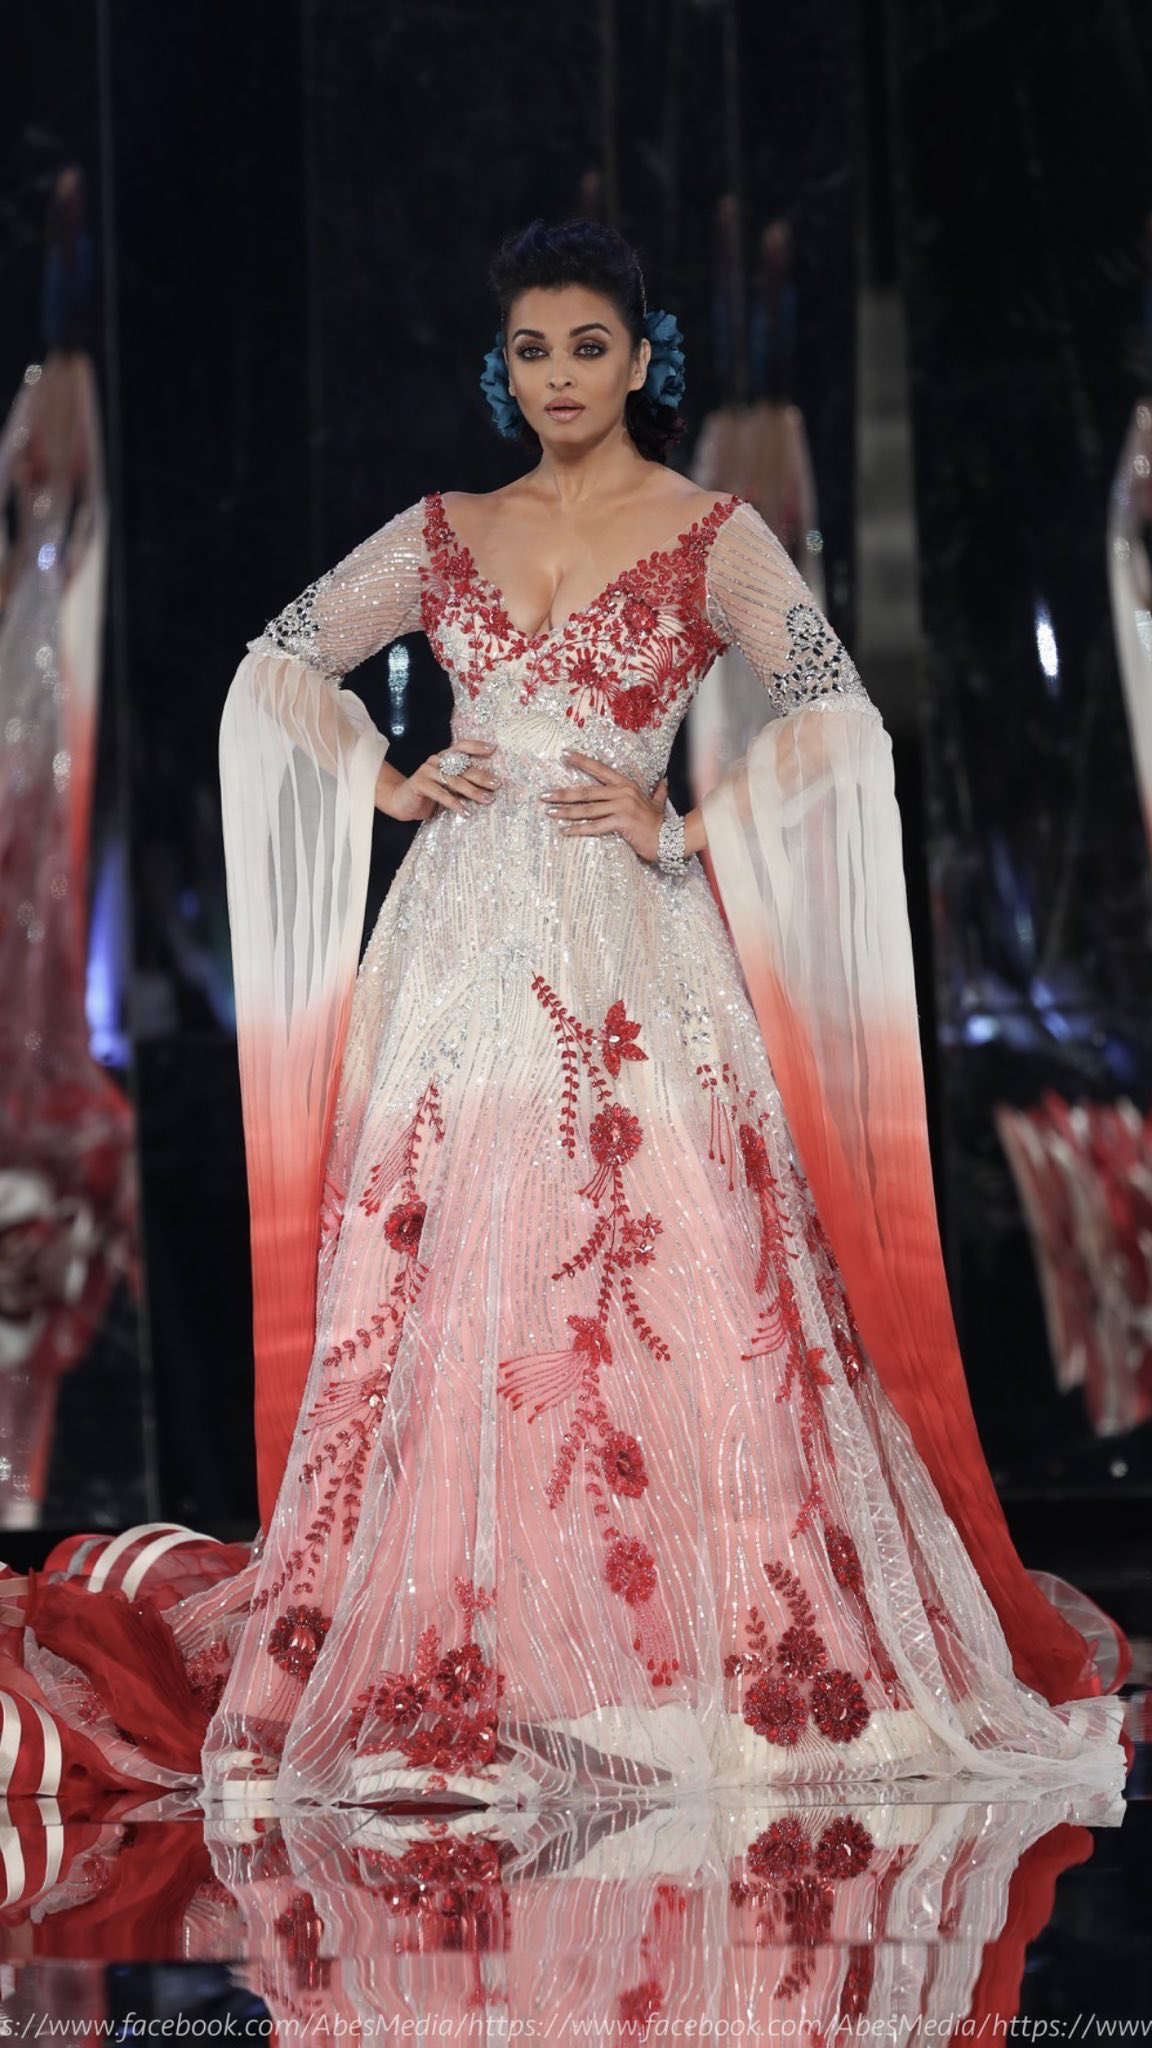 e649e4e0b8b8e Aishwarya Rai Bachchan walks for the 3rd time as Showstopper for Ace  Bollywood Designer Manish Malhotra at a Fashion Show at Doha , in Qatar .